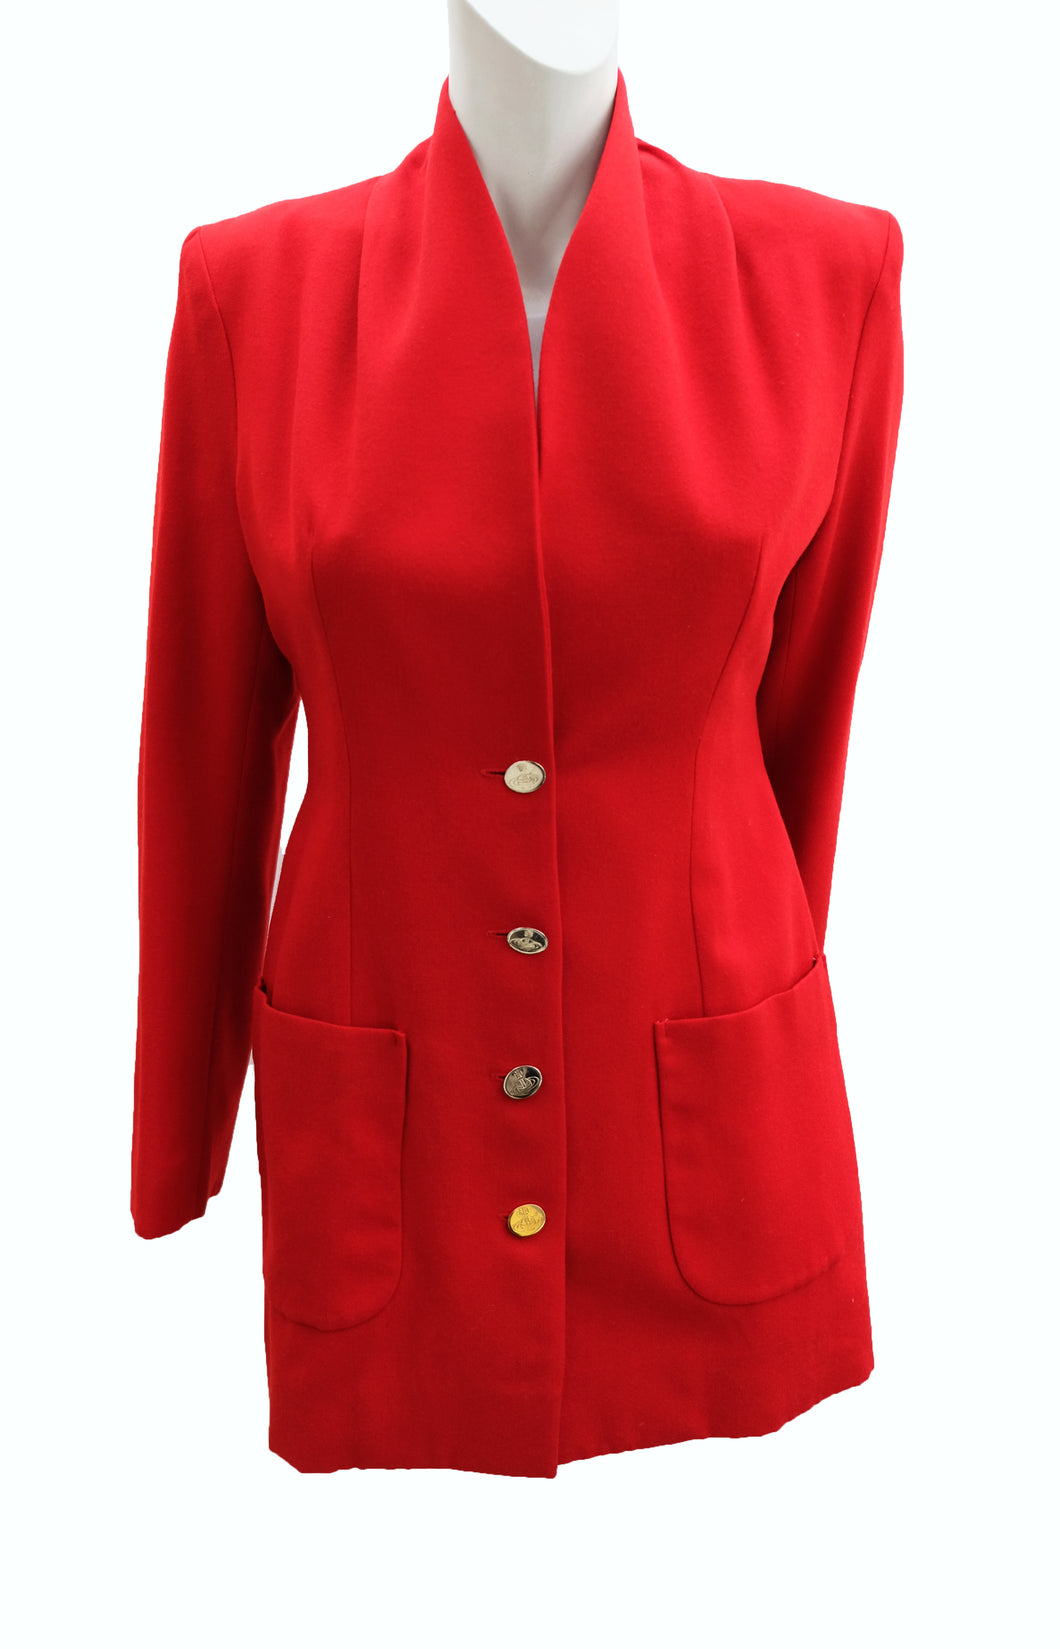 Vivienne Westwood Vintage Jacket in Red Wool with Gold Buttons, UK10